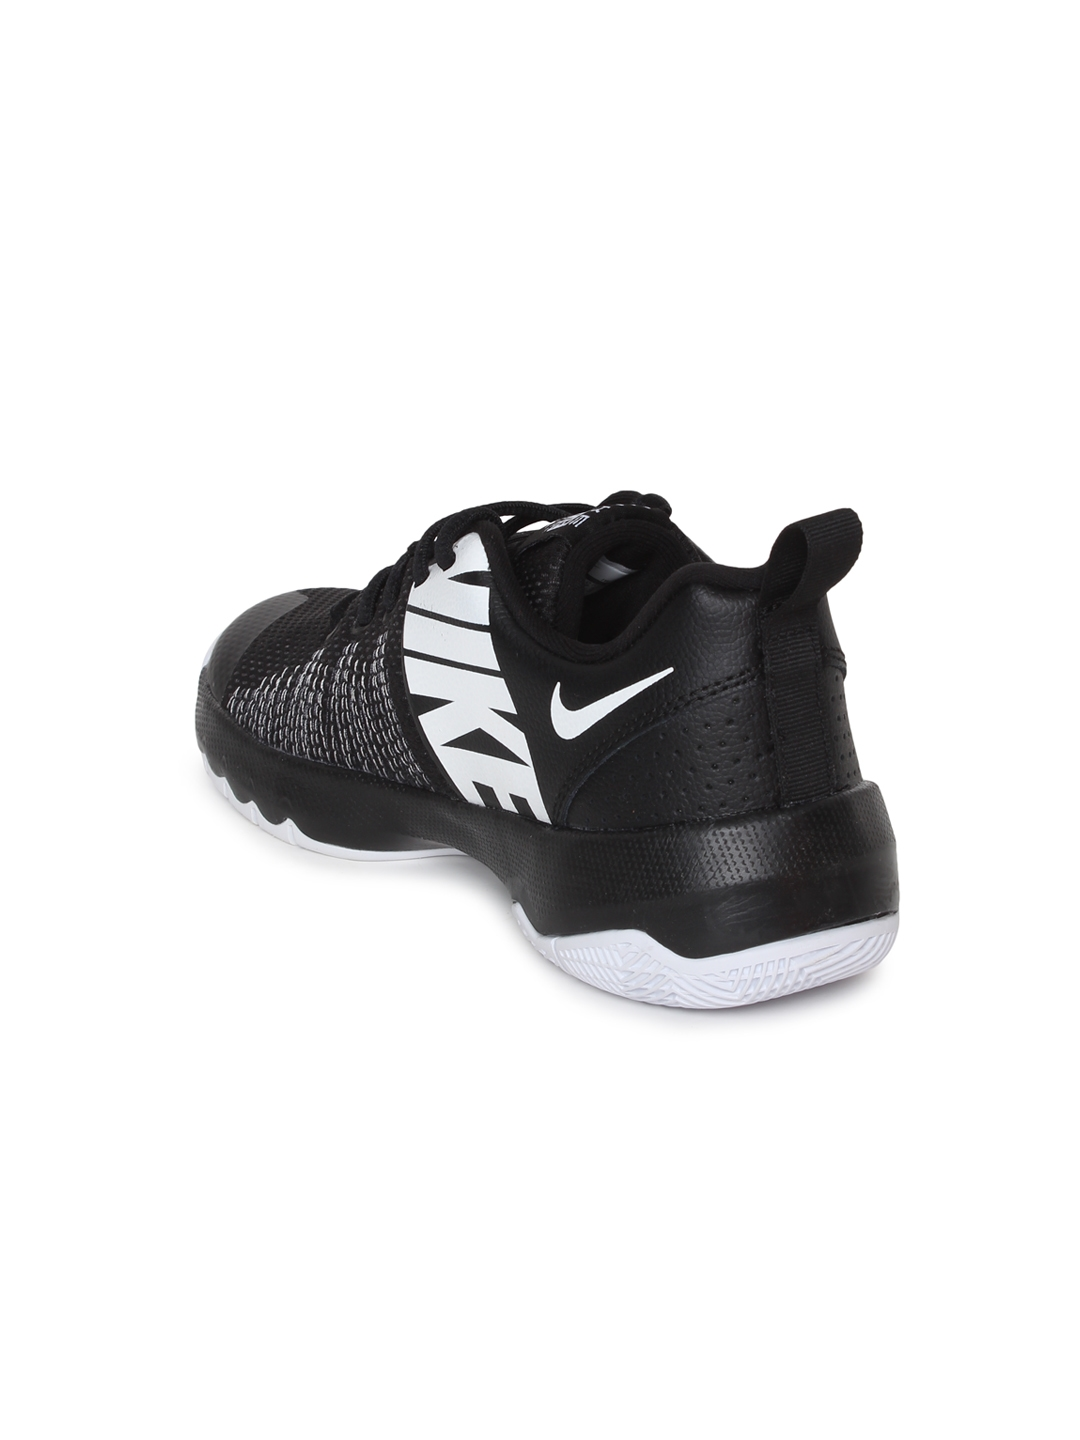 newest 9156a 3ab28 Nike Boys Black Solid Team Hustle Quick (GS) Basketball Shoes